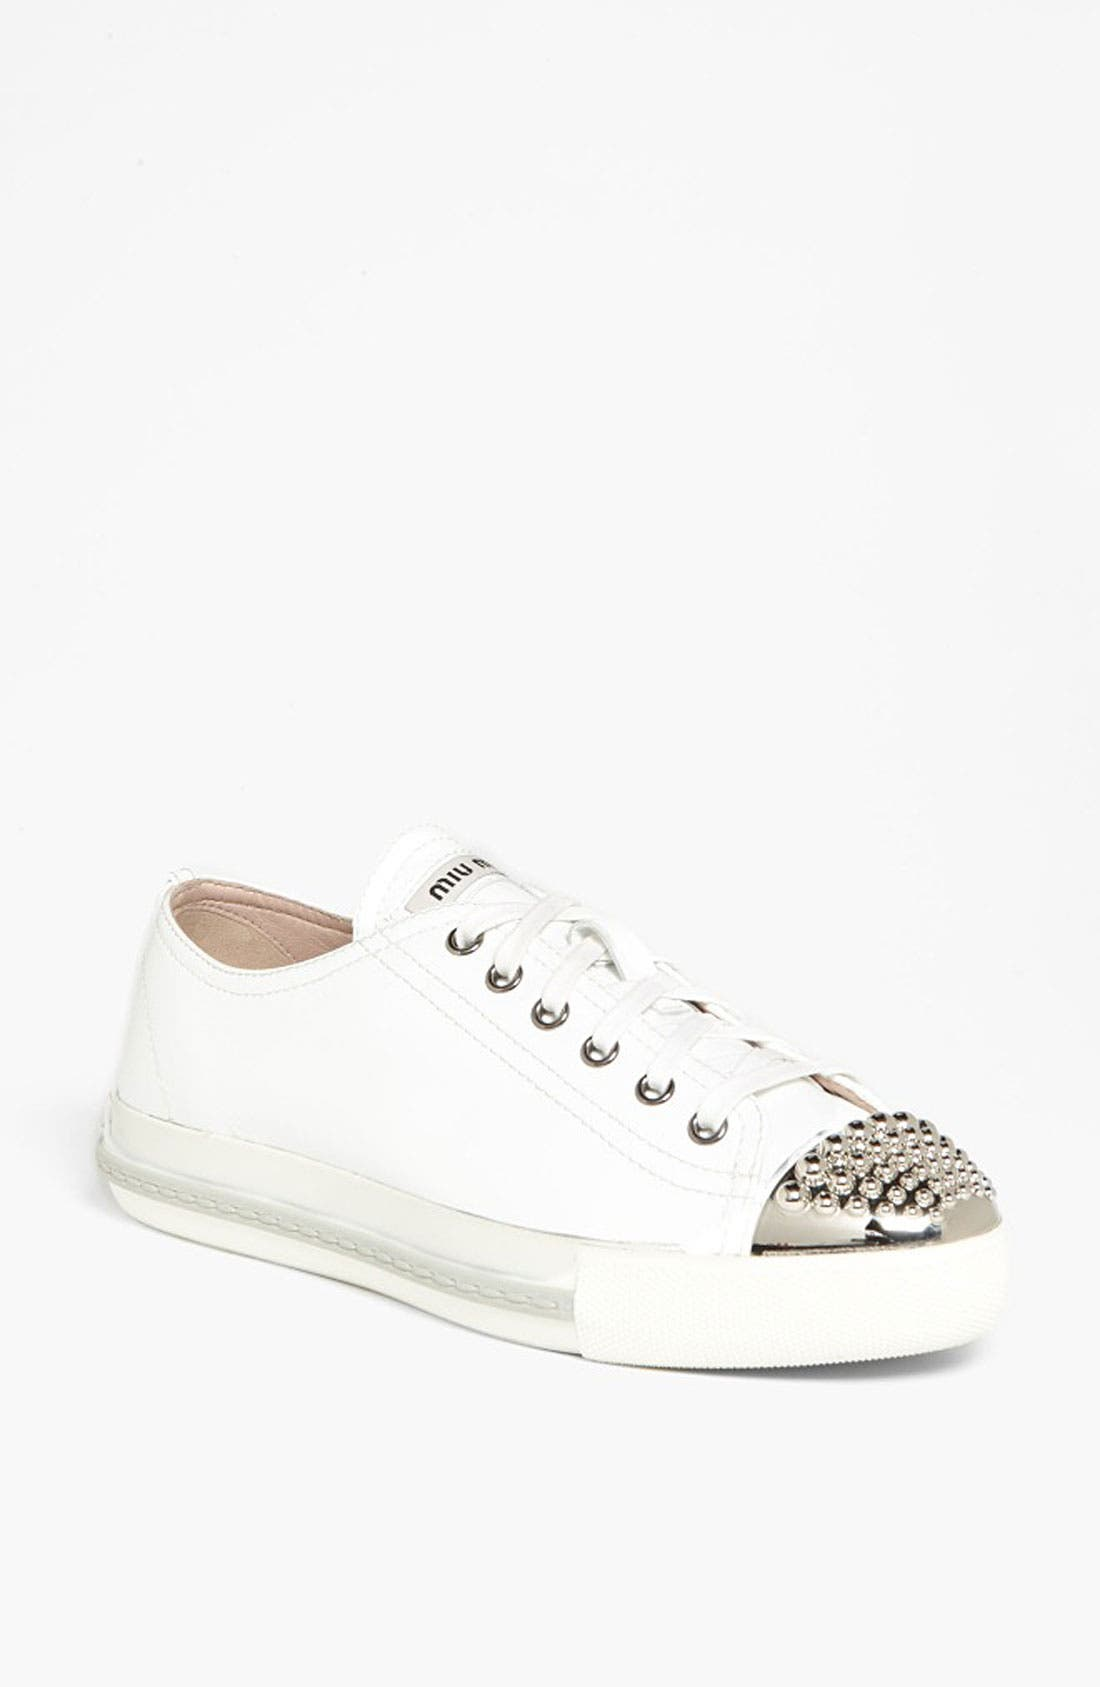 Alternate Image 1 Selected - Miu Miu Patent Cap Toe Sneaker